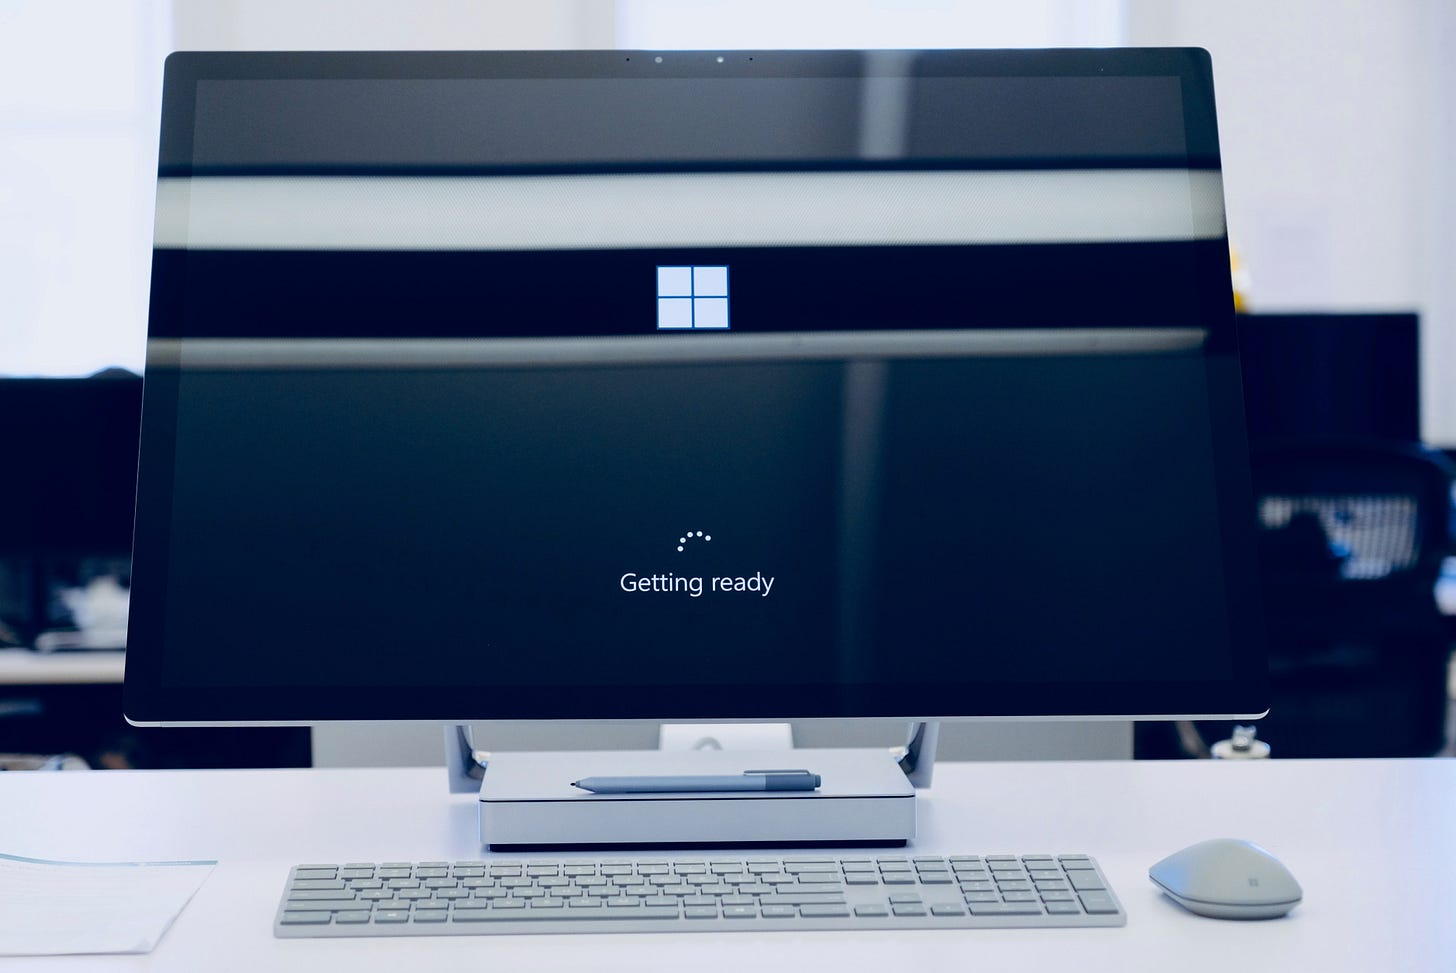 Photo of a Windows PC with a monitor with display text reading 'Getting ready'. Johny Vino / Unsplash